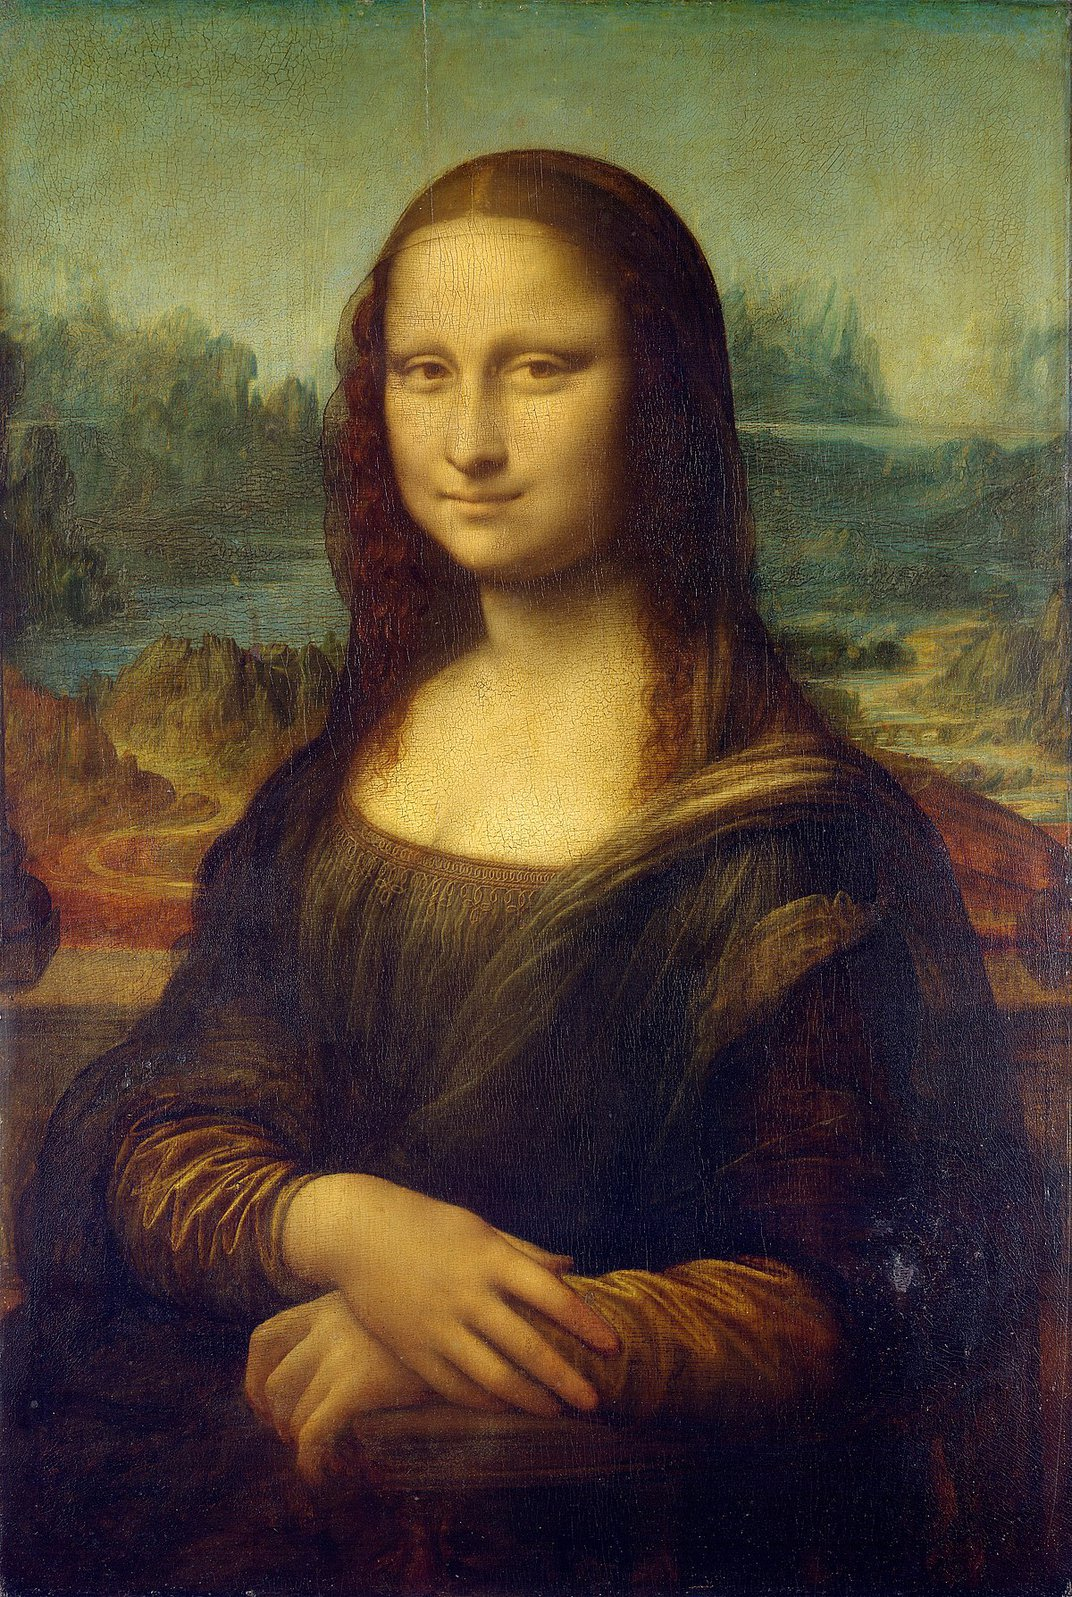 Is There a Hidden Drawing Beneath the 'Mona Lisa'?